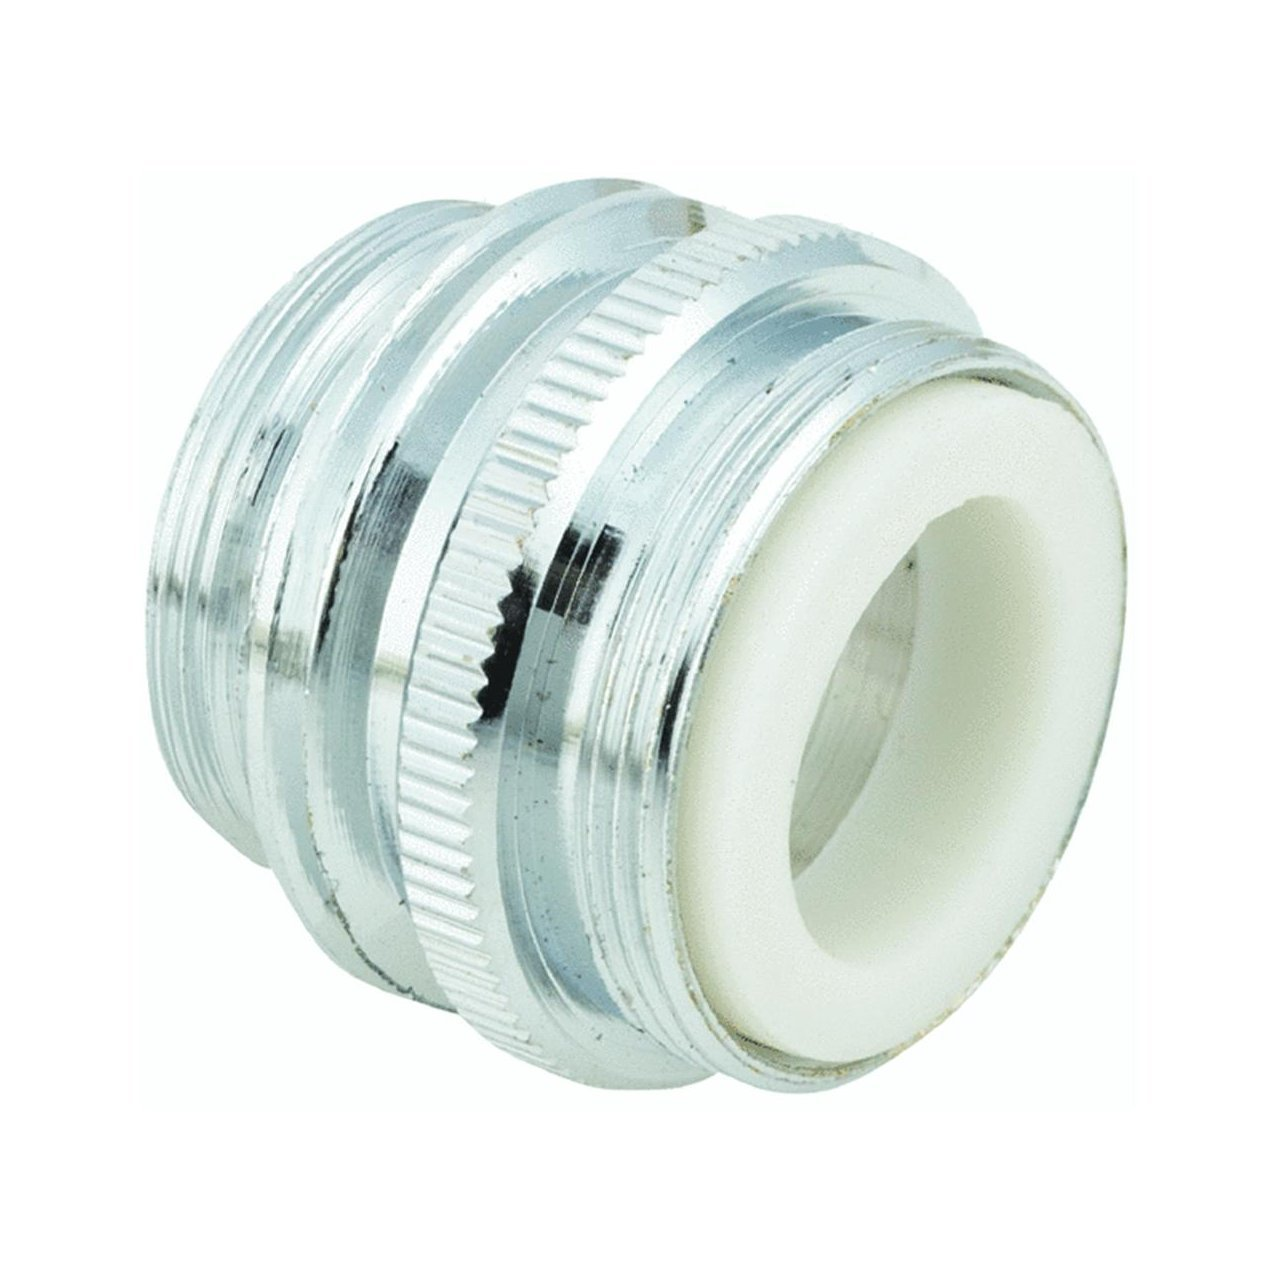 A 4 Hose Adapter For My Kitchen Faucet Boing Boing